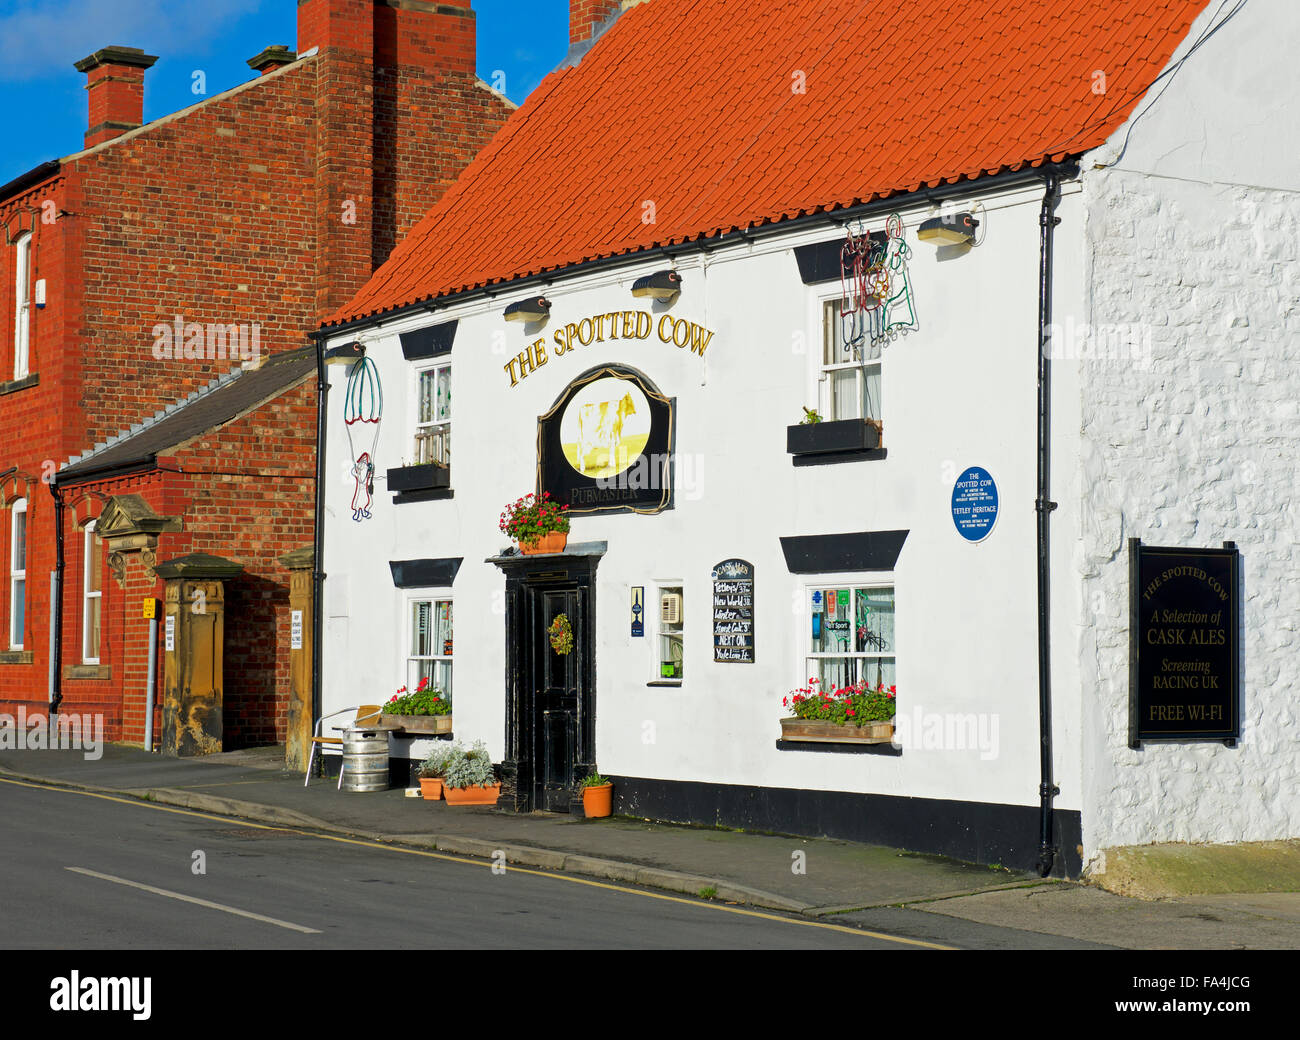 The Spotted Cow, one of Tetley's heritage pubs, Malton, North Yorkshire, England UK - Stock Image